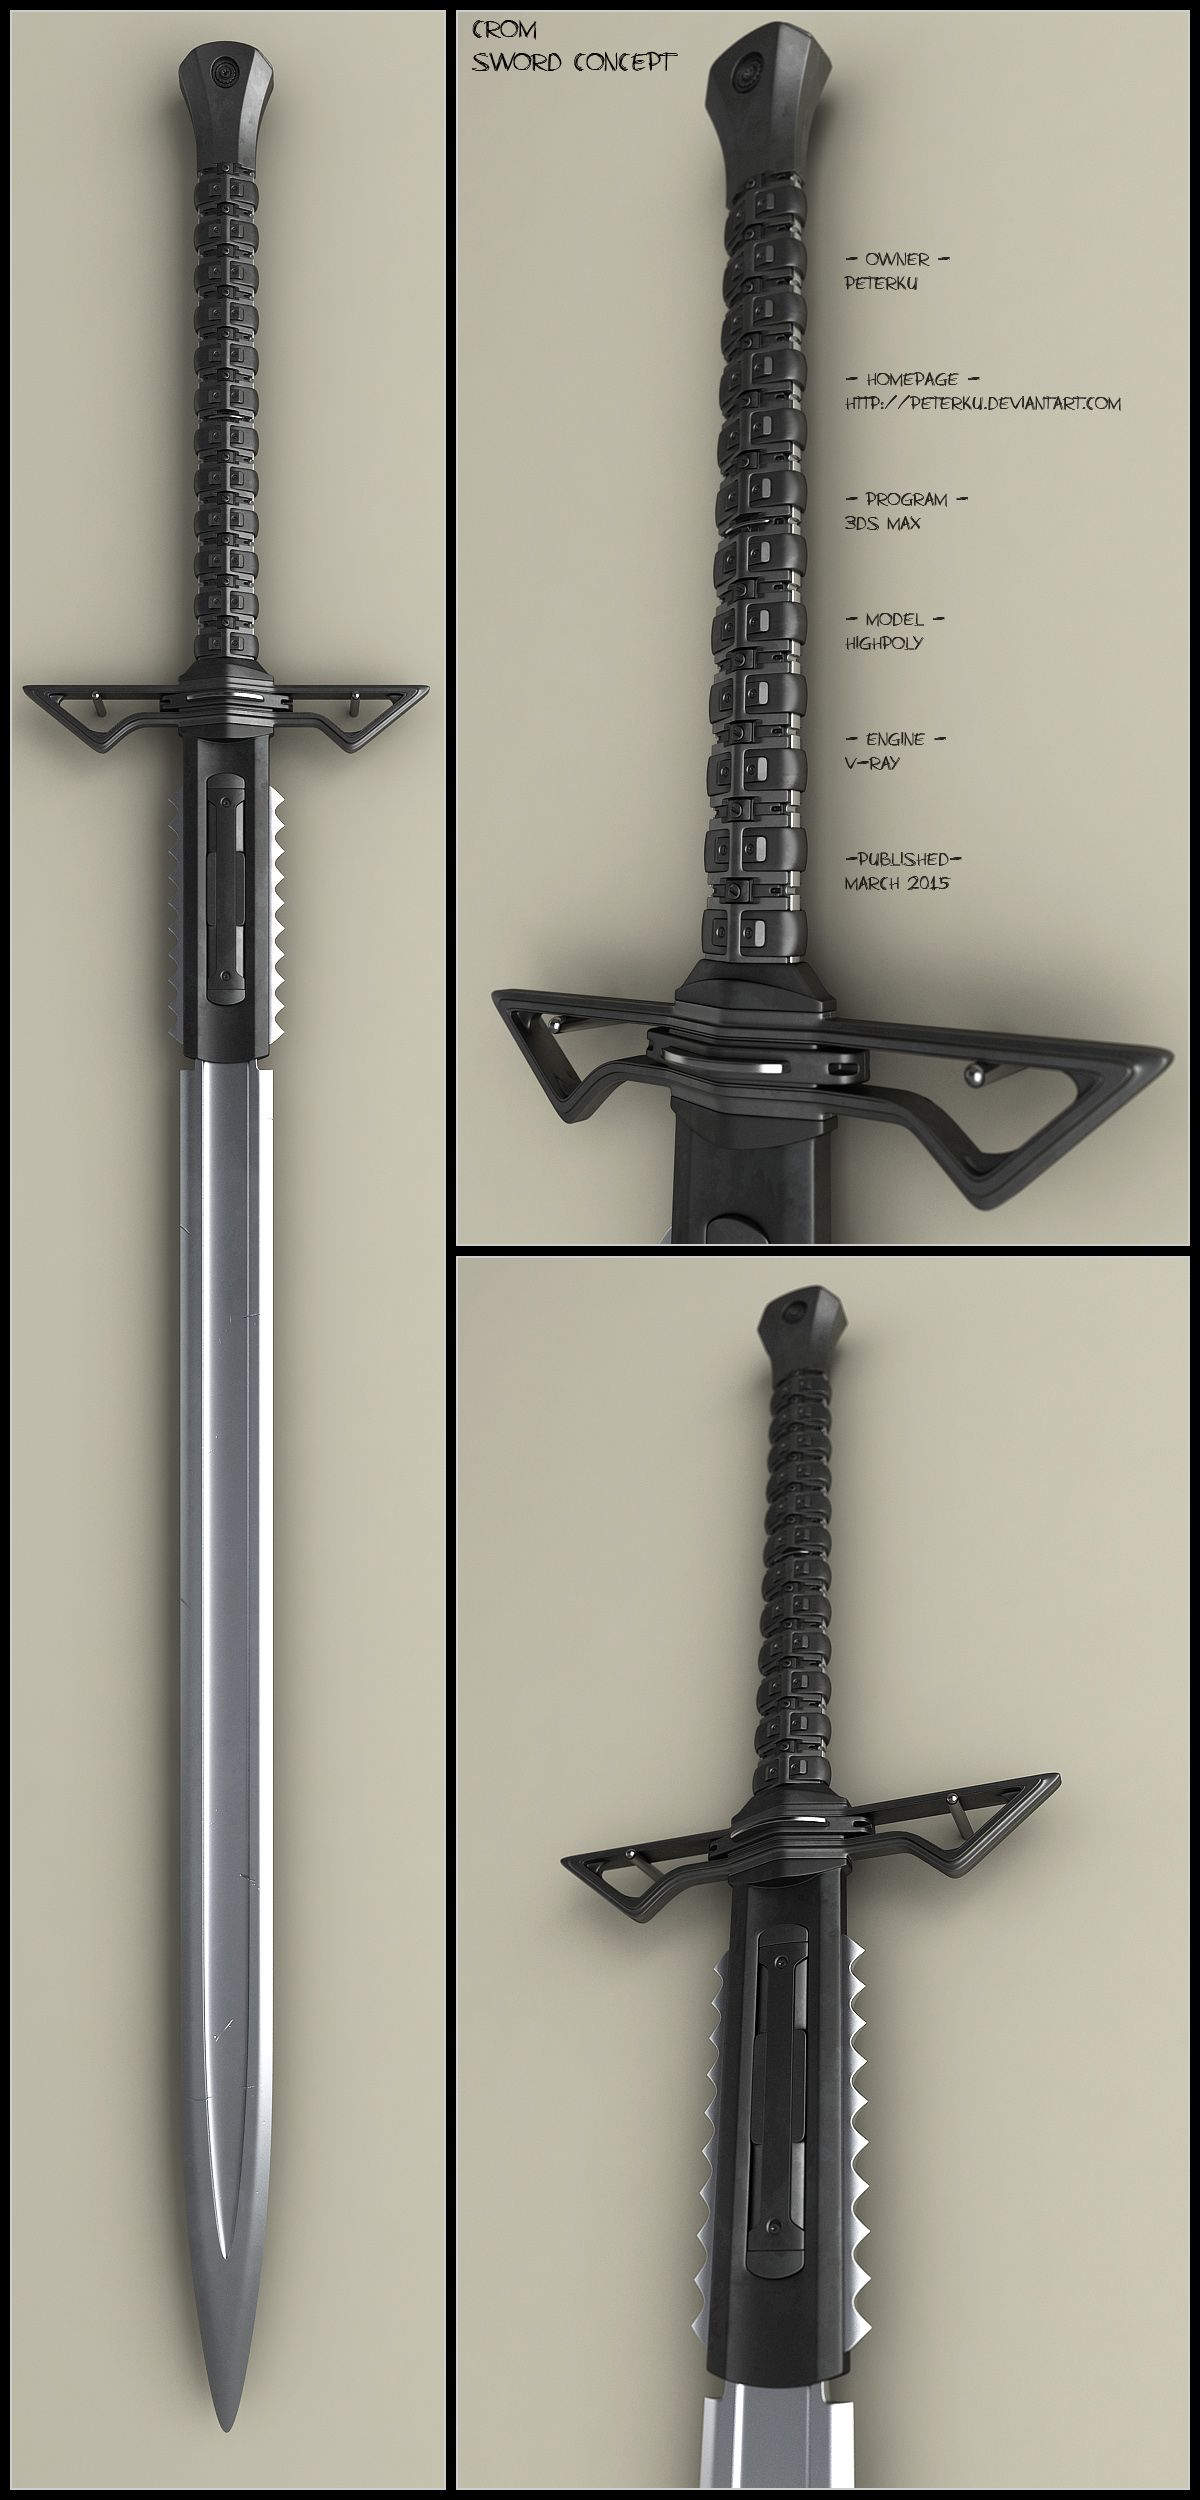 Crom By Peterku On Deviantart Kim Pinterest Katana Engine Diagram